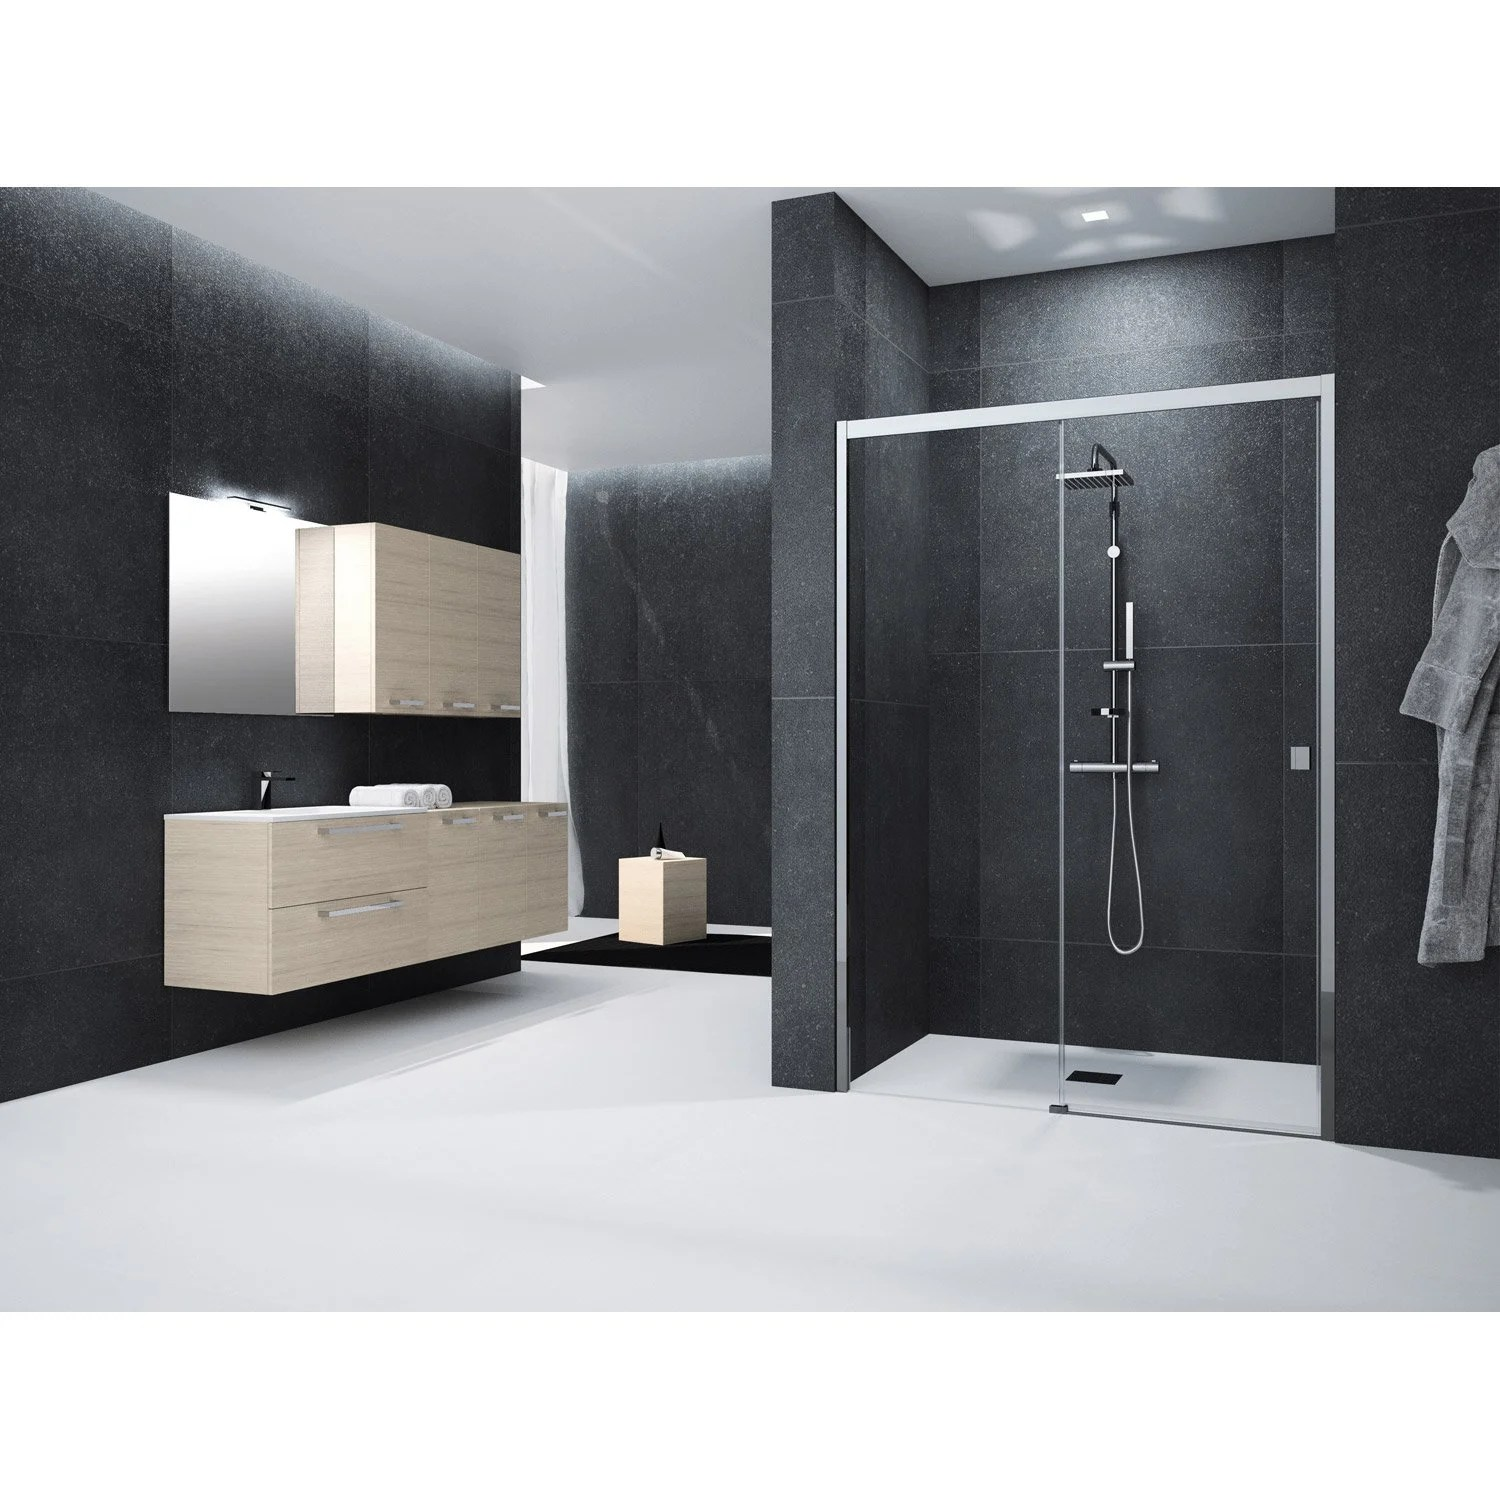 Porte Coulissante Magasin Porte De Douche Coulissante 140 Cm Transparent Neo